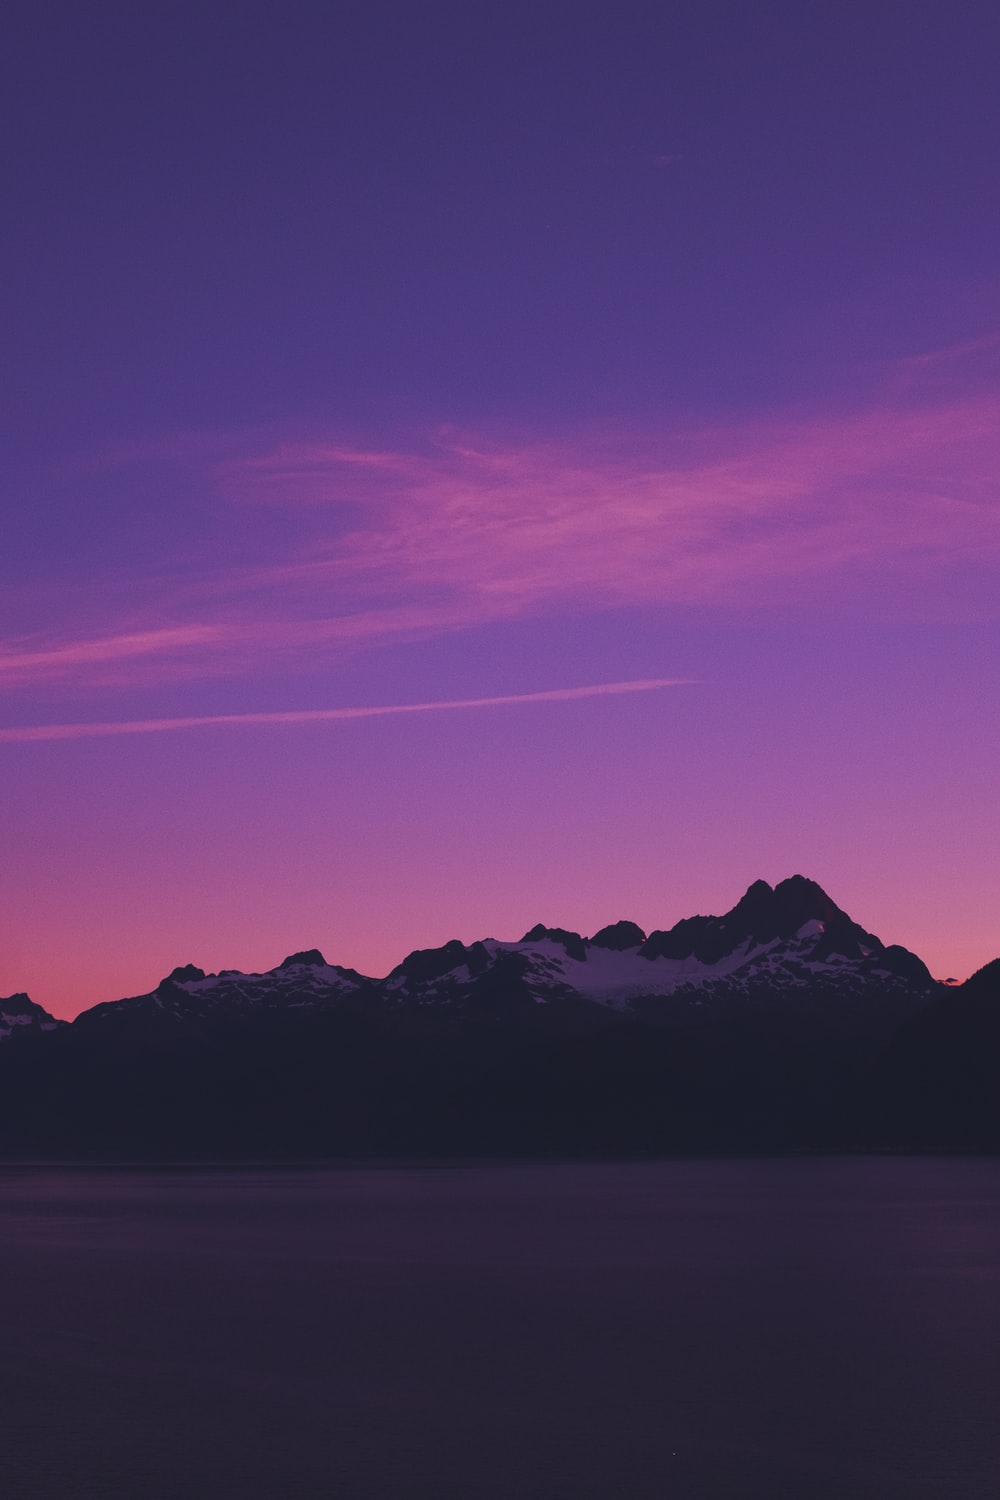 silhouette of mountain under clear sky